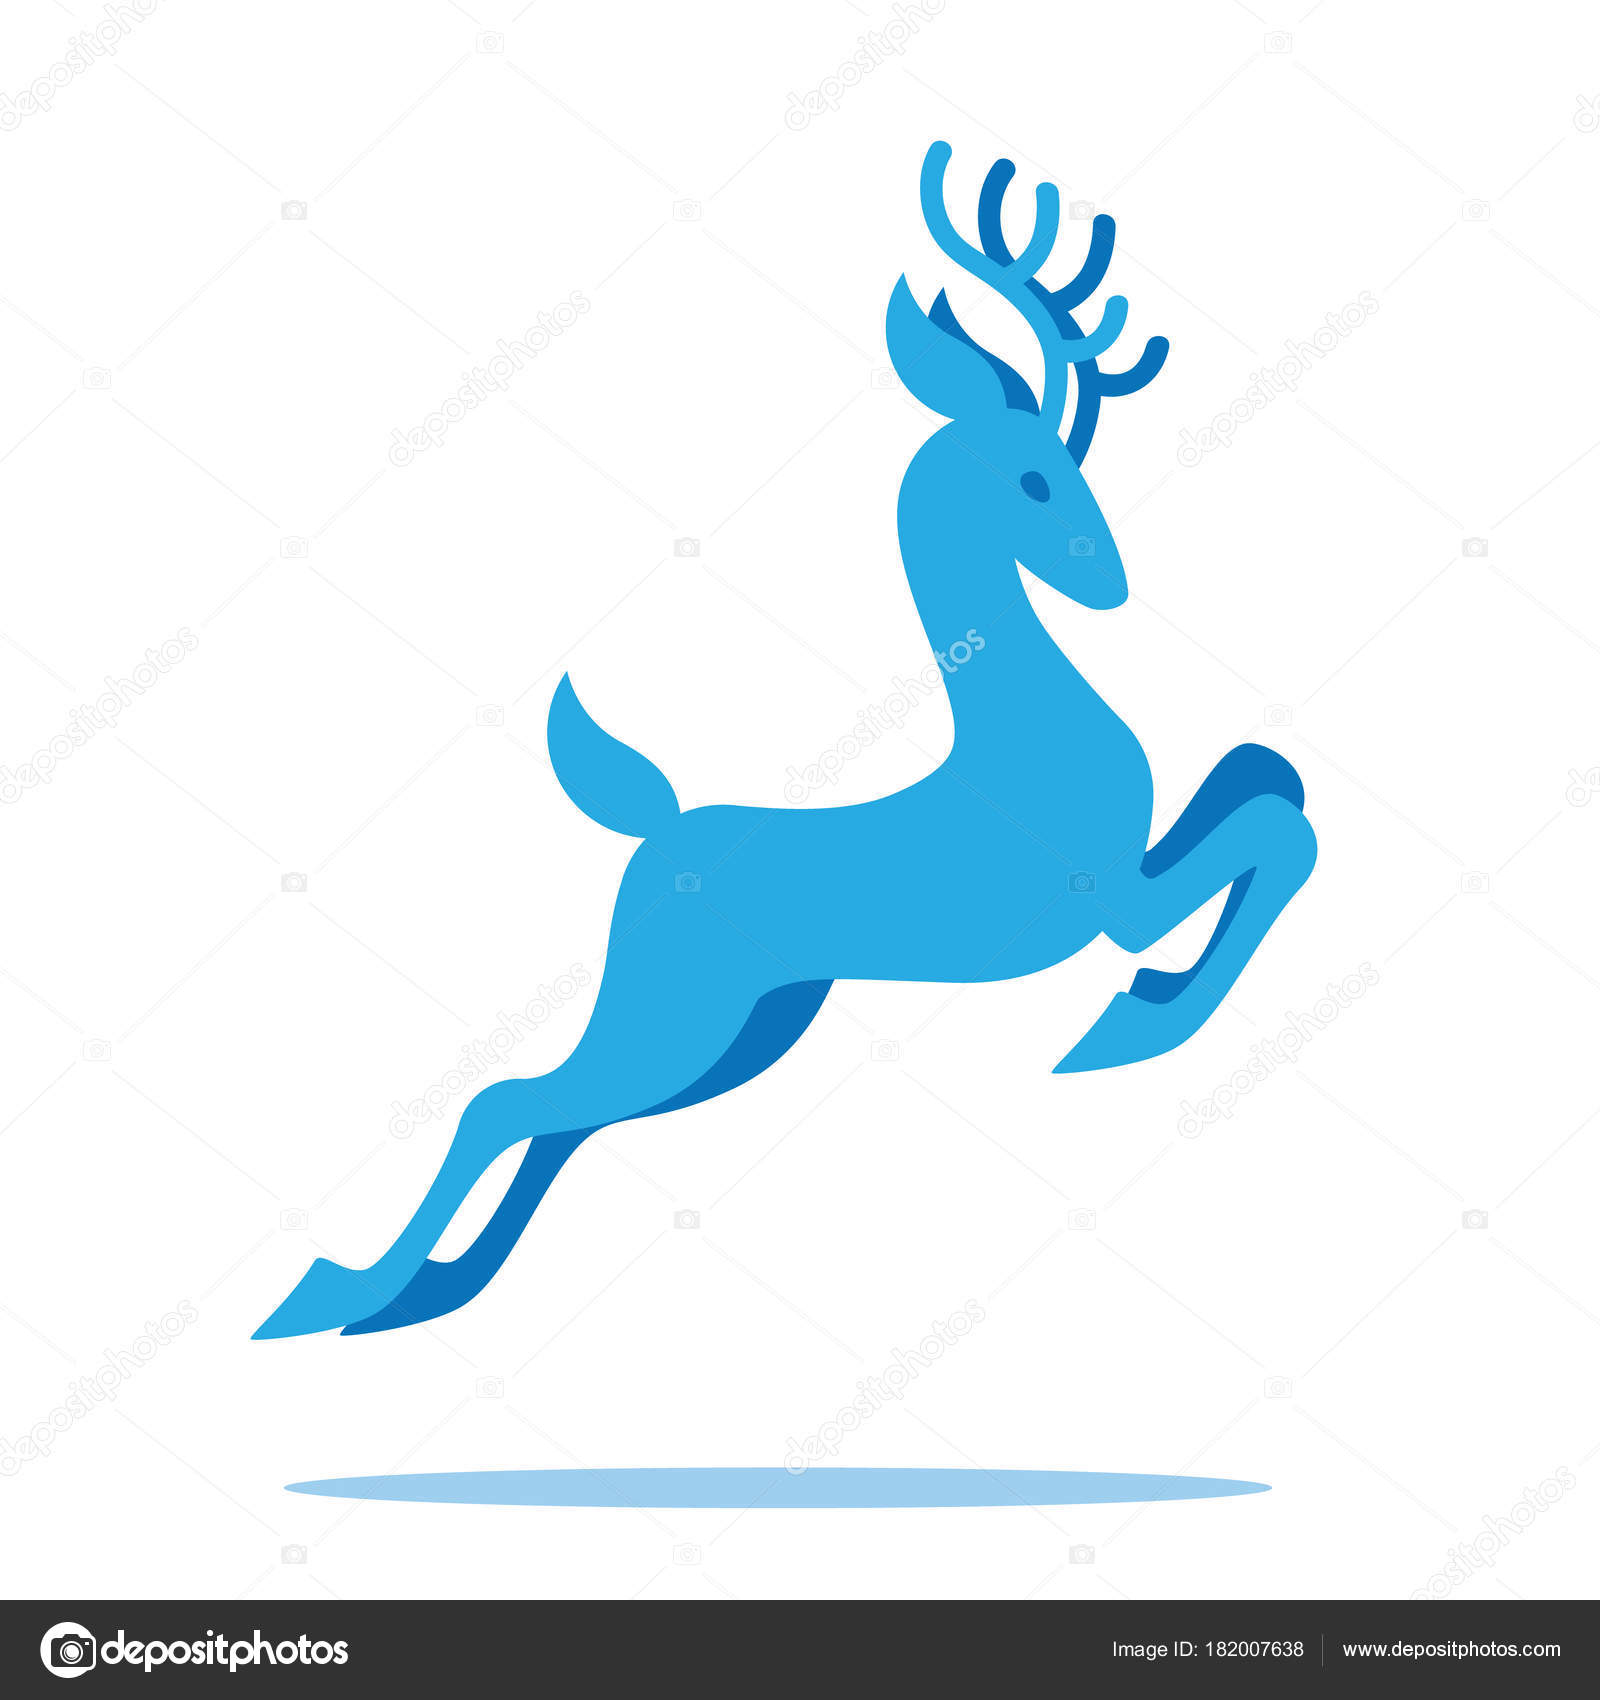 O Deer Graceful Deer With Antlers Jumping And Grazing. Vector Illustration Of Blue  Fairy Deer Silhouette In